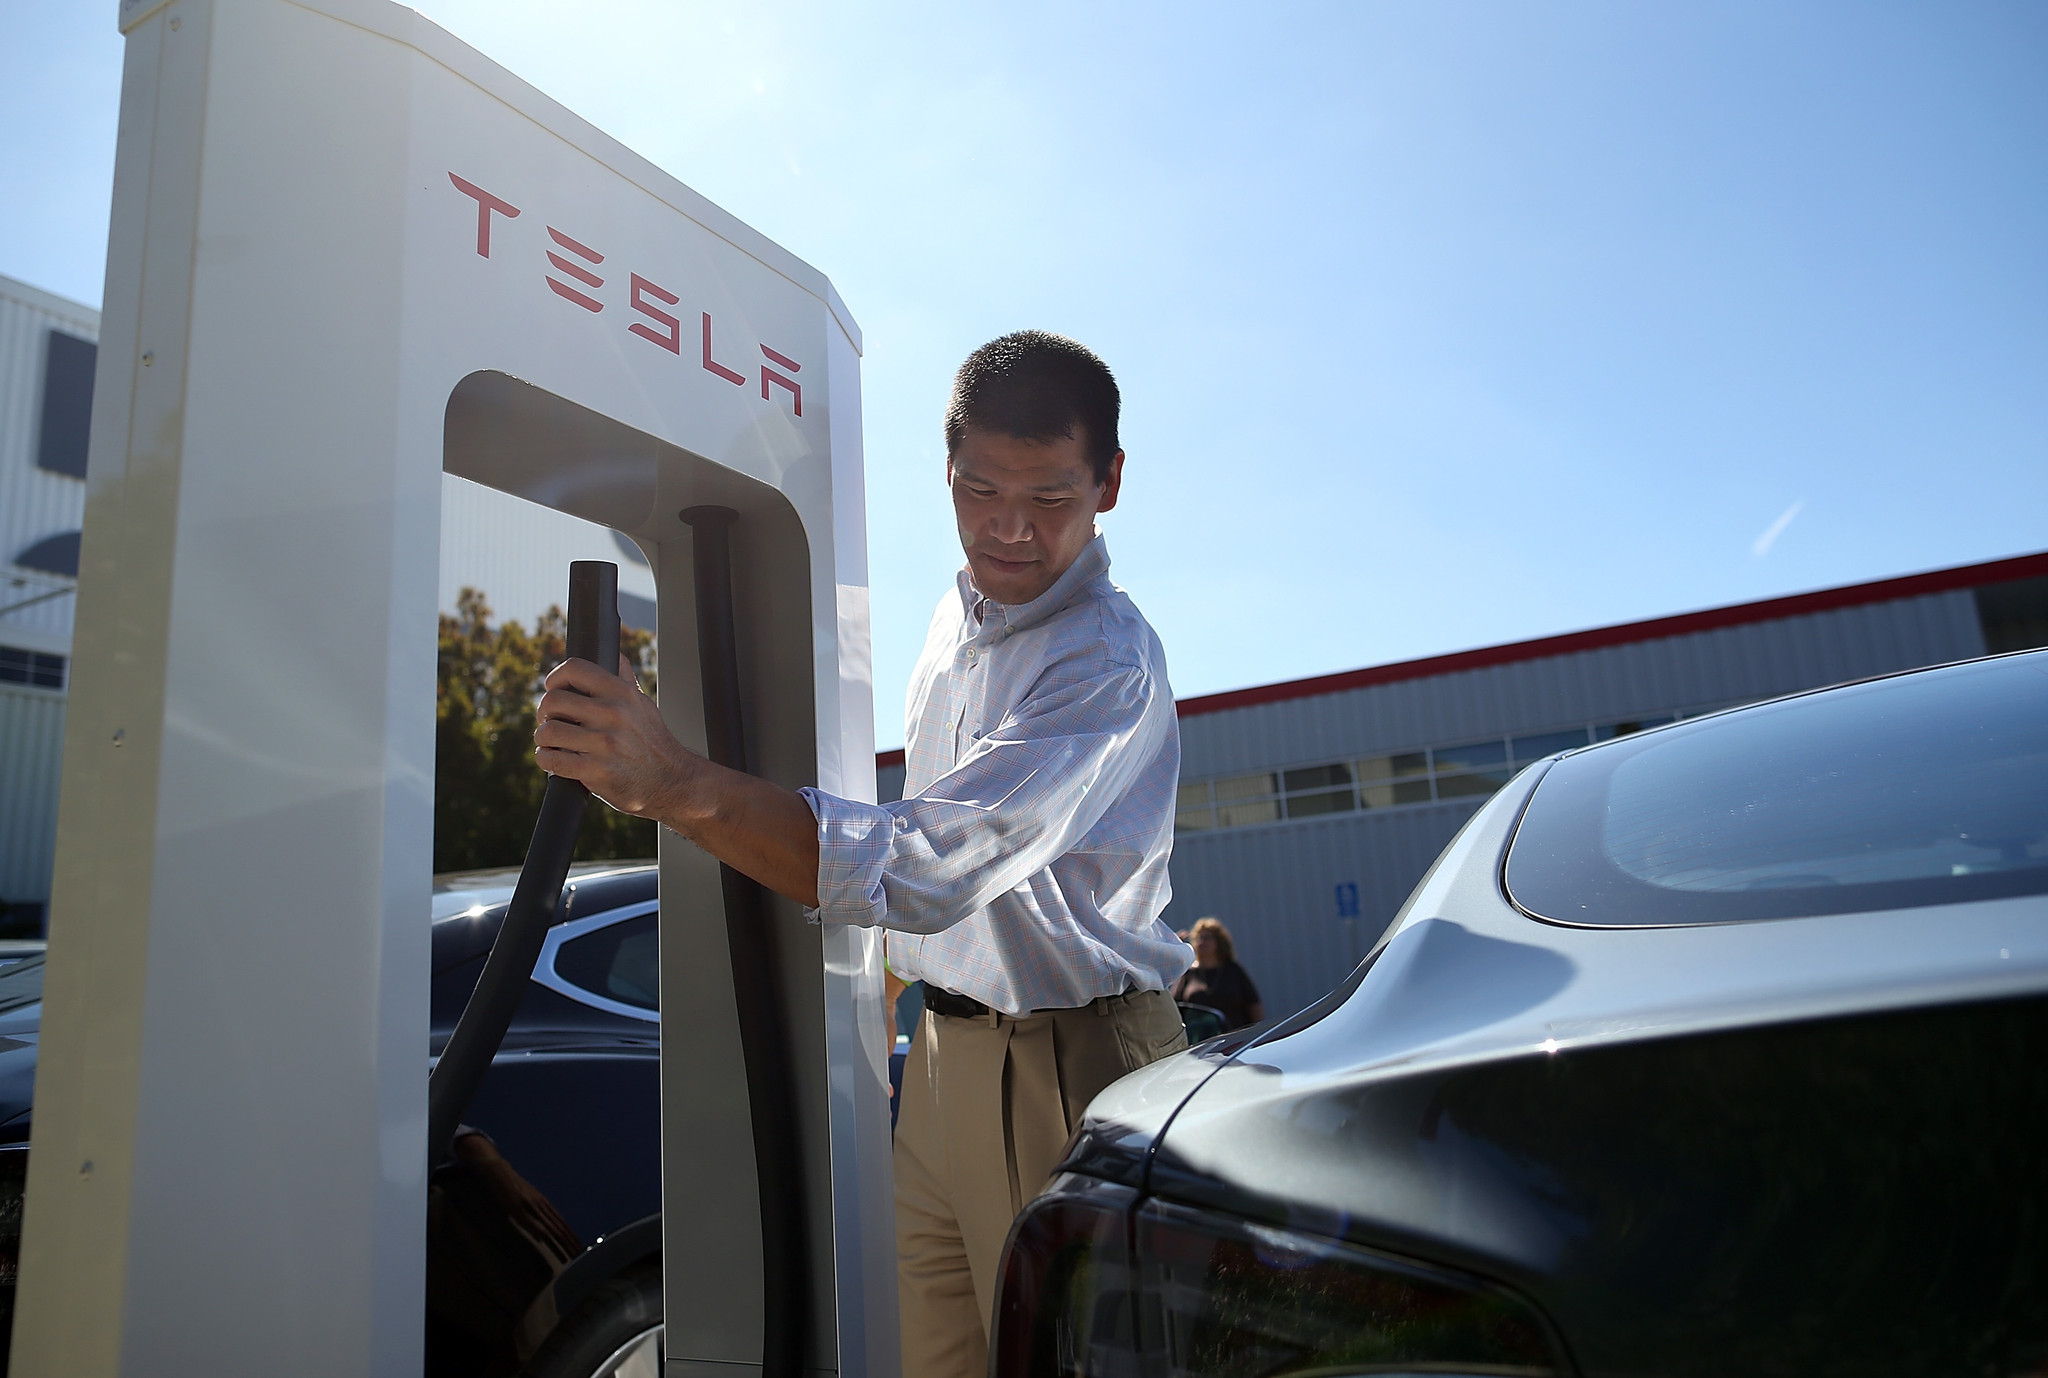 This new Tesla battery will power your home, and maybe the electric grid too